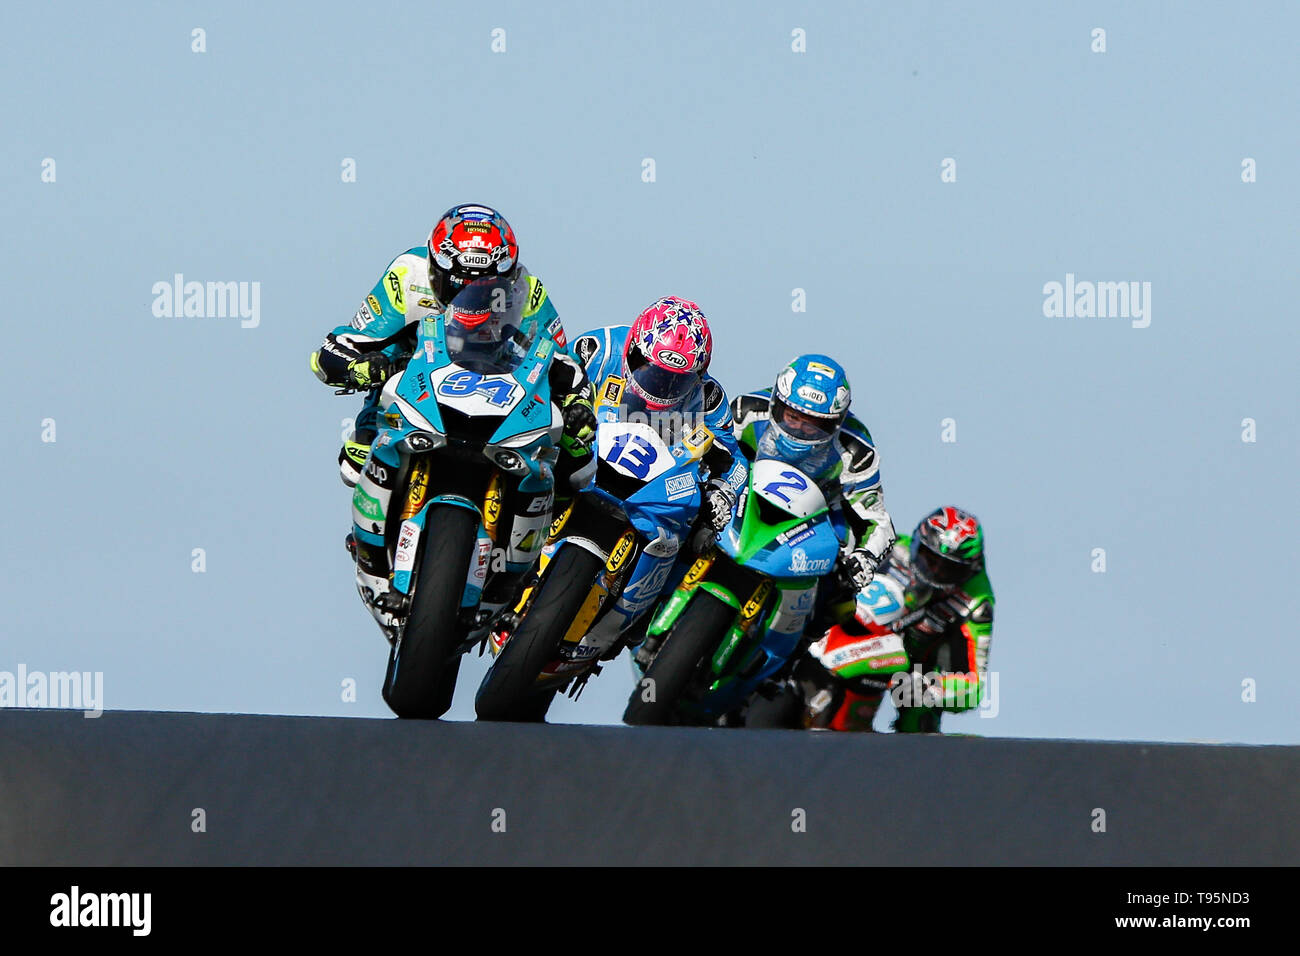 Portrush, Irlanda del Nord. 16 Maggio, 2019. Internazionale Nord Ovest 200 motorcycle road racing, pratica giovedì sera e racing; Alastair Seeley (EHA Racing Yamaha) conduce Lee Johnston (Ashcourt Racing Yamaha), Dean Harrison (Silicone Engineering Racing Kawasaki) e James Hillier (Quattro impianti rivestimenti malvagio Kawasaki) durante la gara SuperSport Credito: Azione Sport Plus/Alamy Live News Immagini Stock